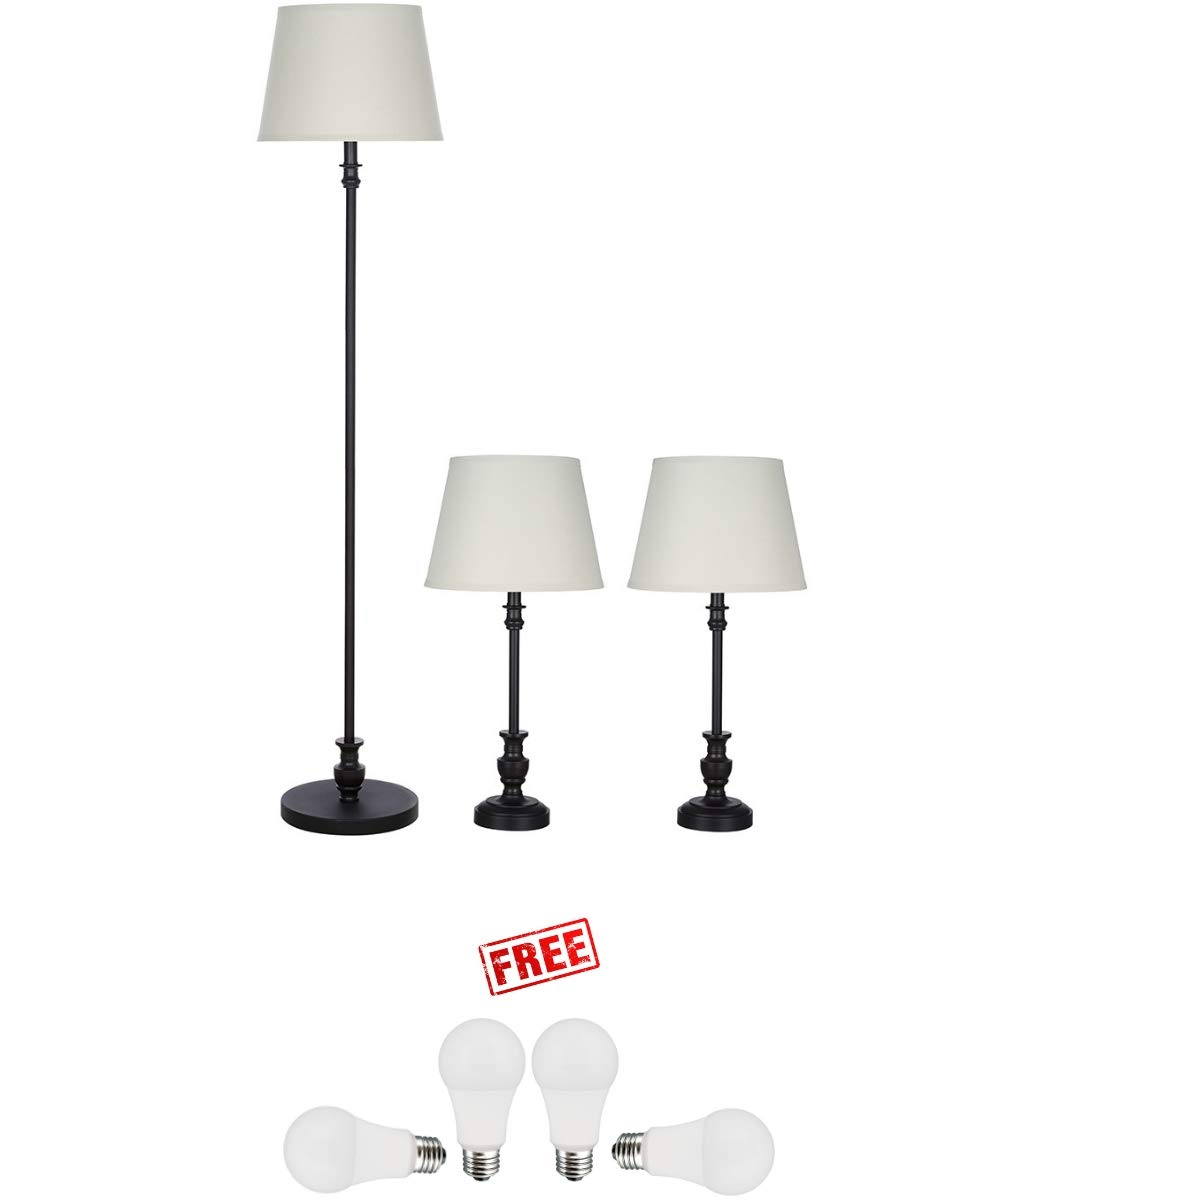 Better Homes & Gardens 3-Piece Lamp Set, Bronze Finish with Free